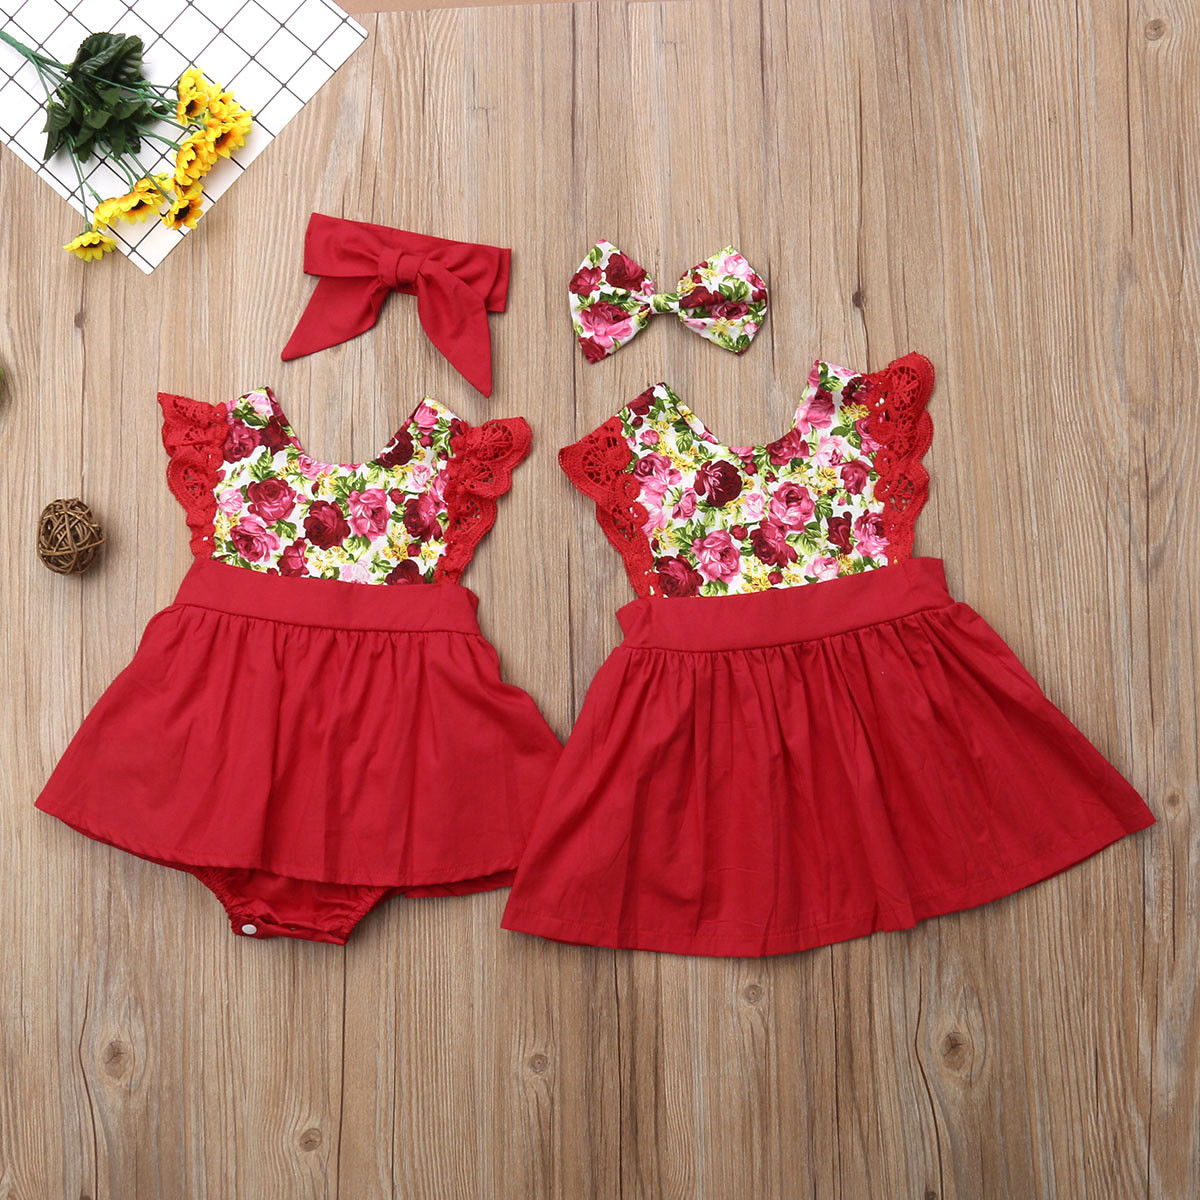 Summer Little//Big Sister Matching Clothes Baby Girl Floral Romper Dress Outfit